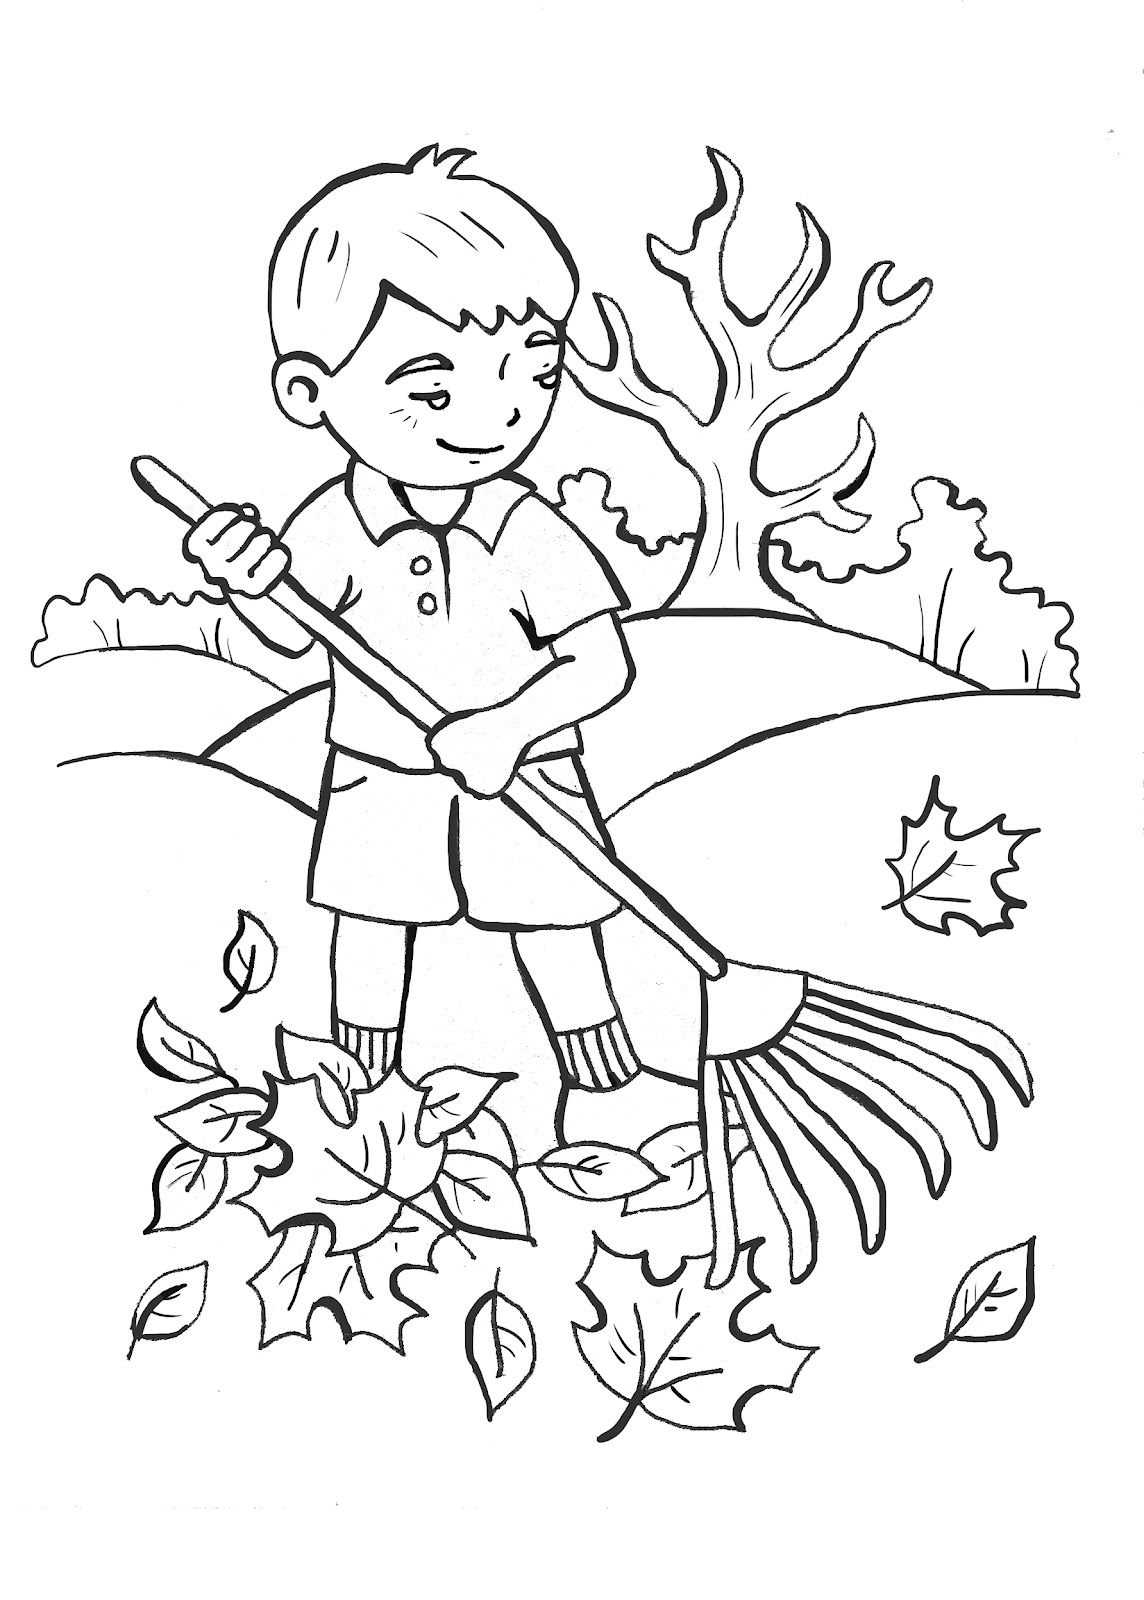 Illustration Alchemy Lds Mobile Apps Coloring Pages Lds Coloring Page